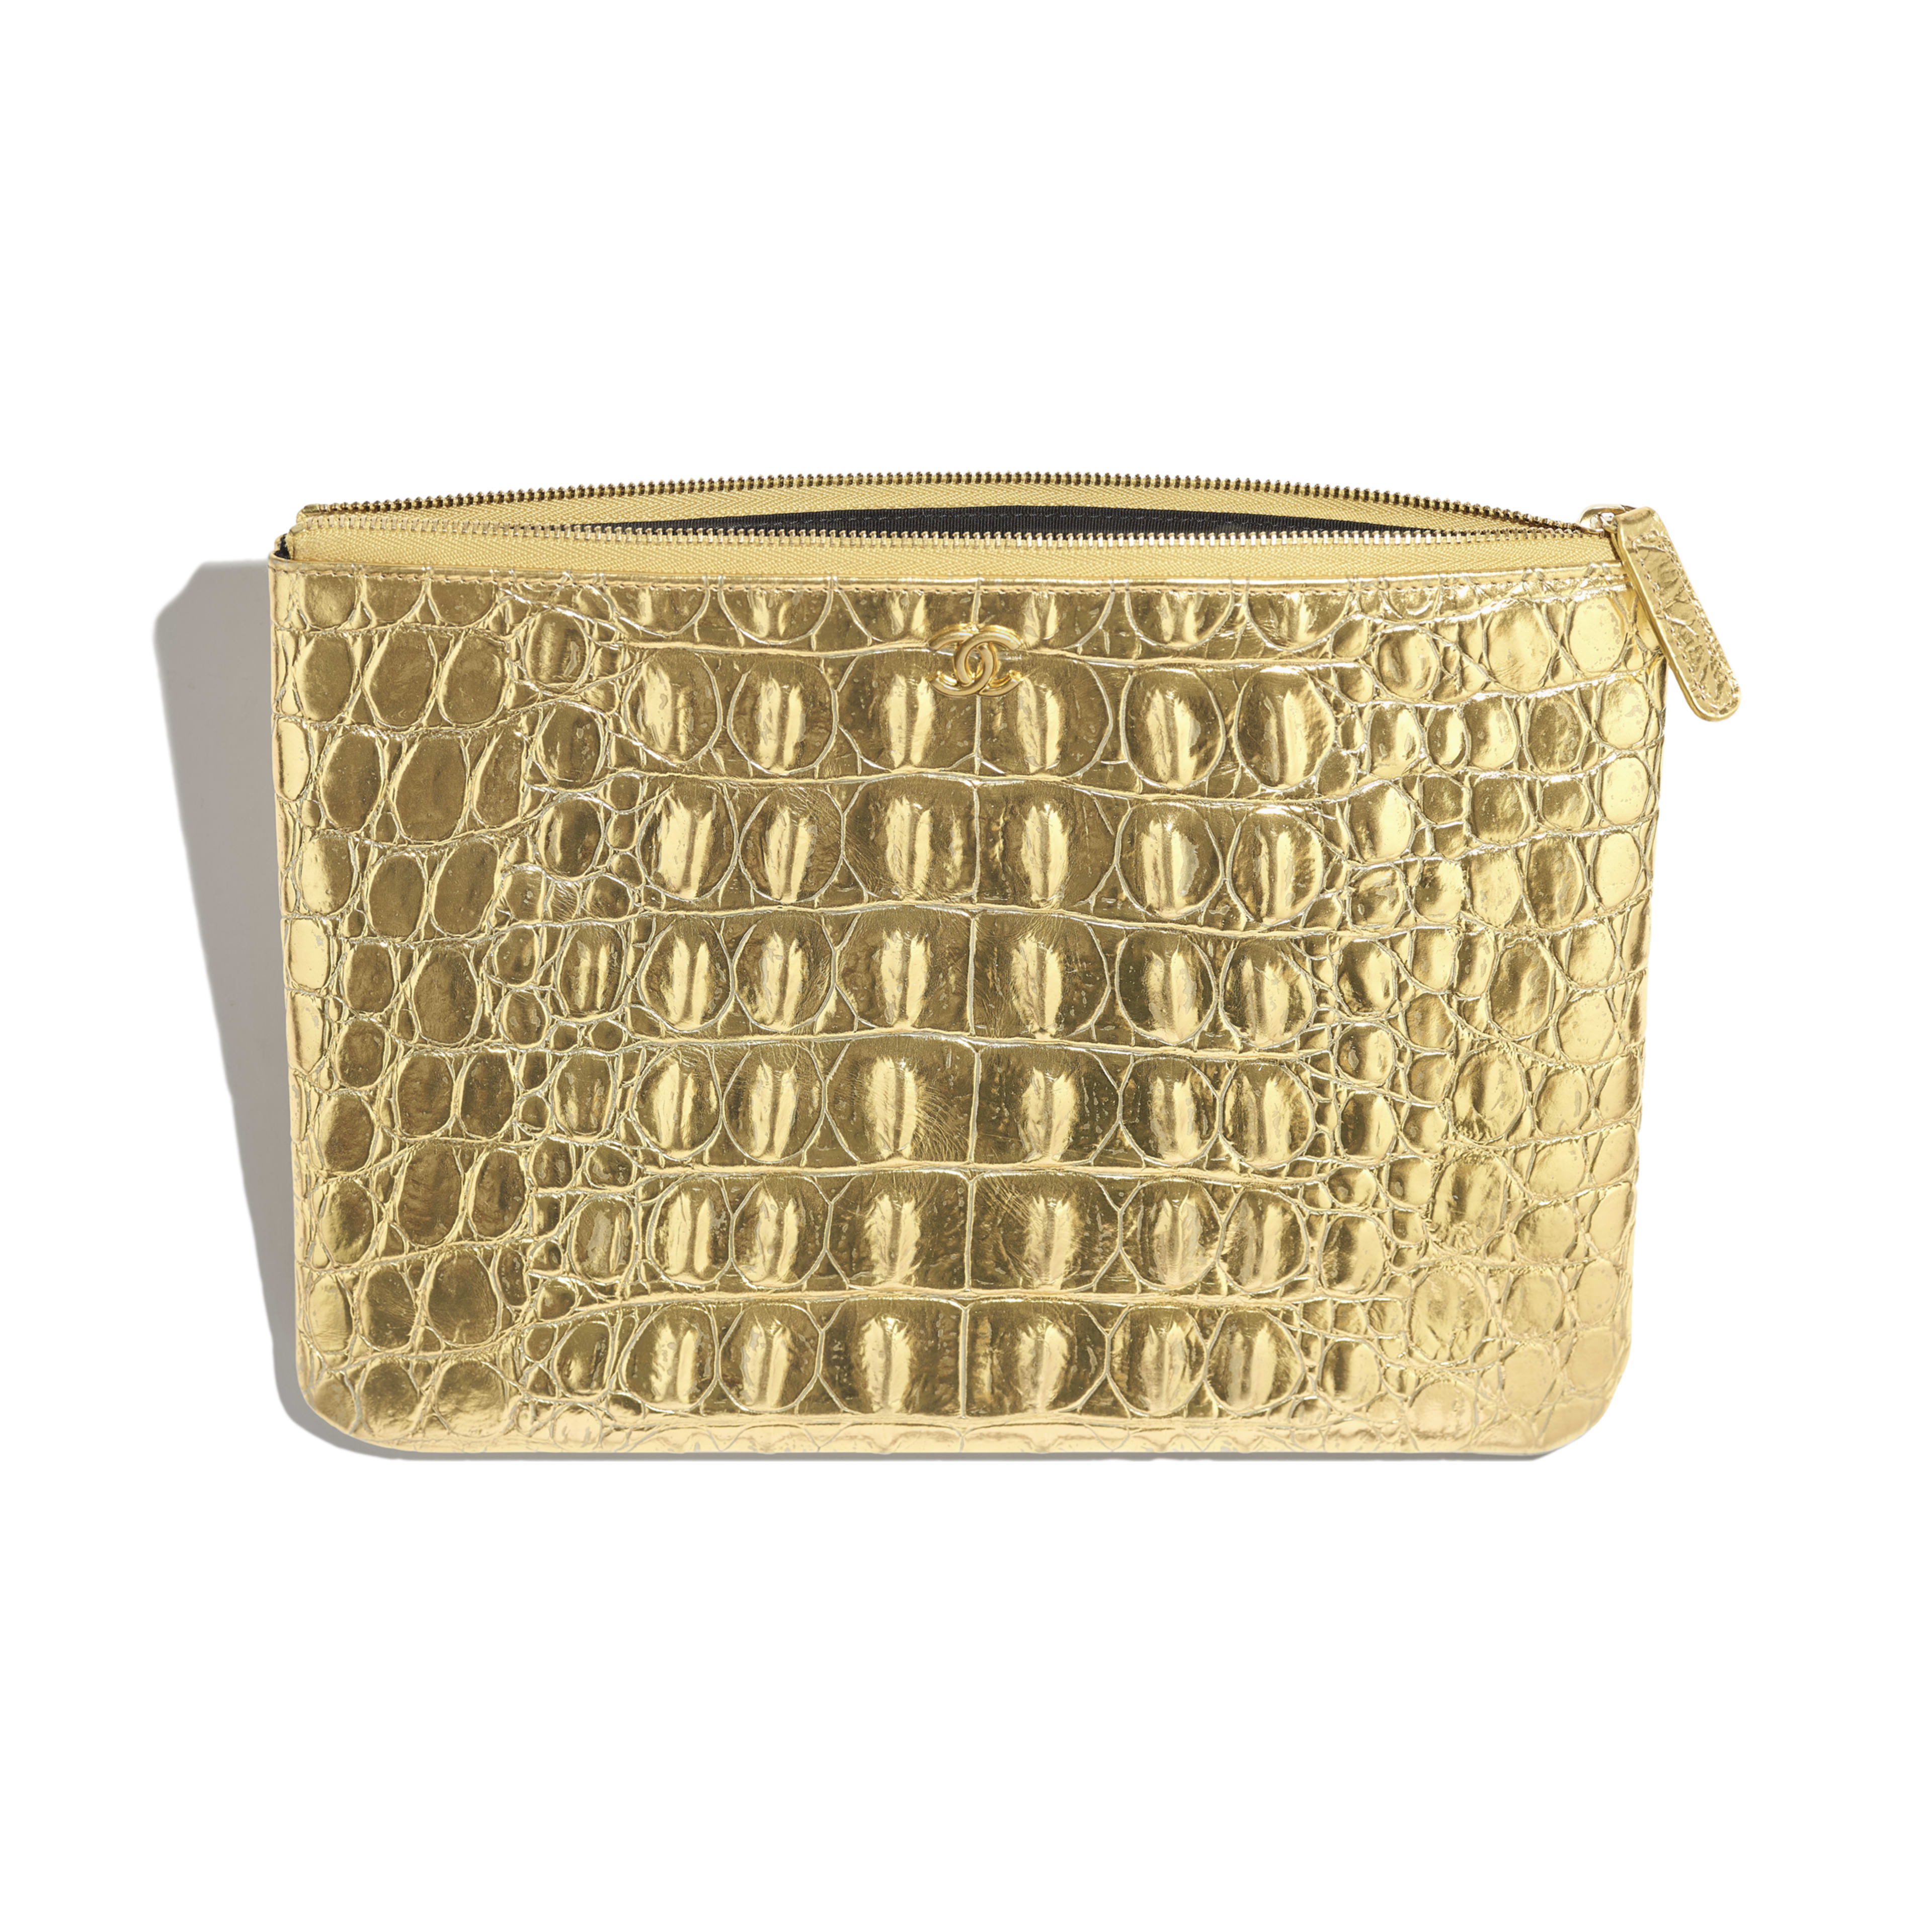 Classic Pouch - Gold - Metallic Crocodile Embossed Calfskin & Gold Metal - Other view - see full sized version